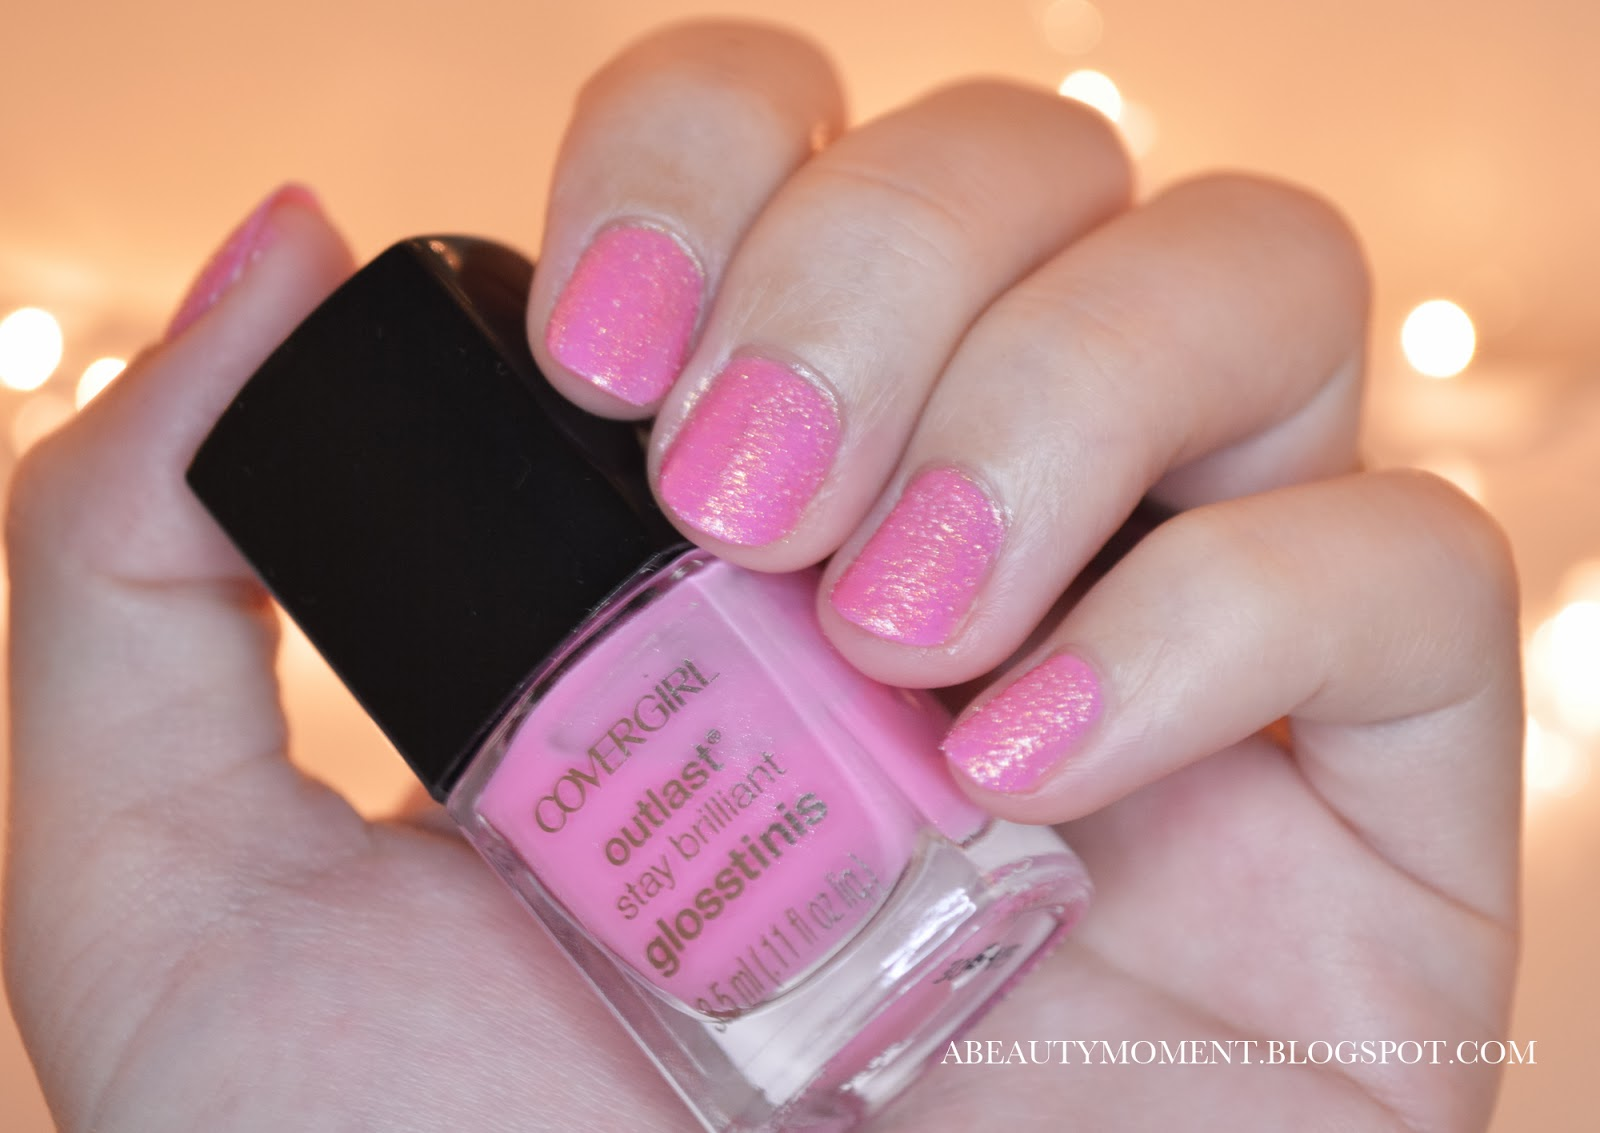 A Beauty Moment Sally Hansen Sugar Shimmer In Sugar Plum Swatches And Review